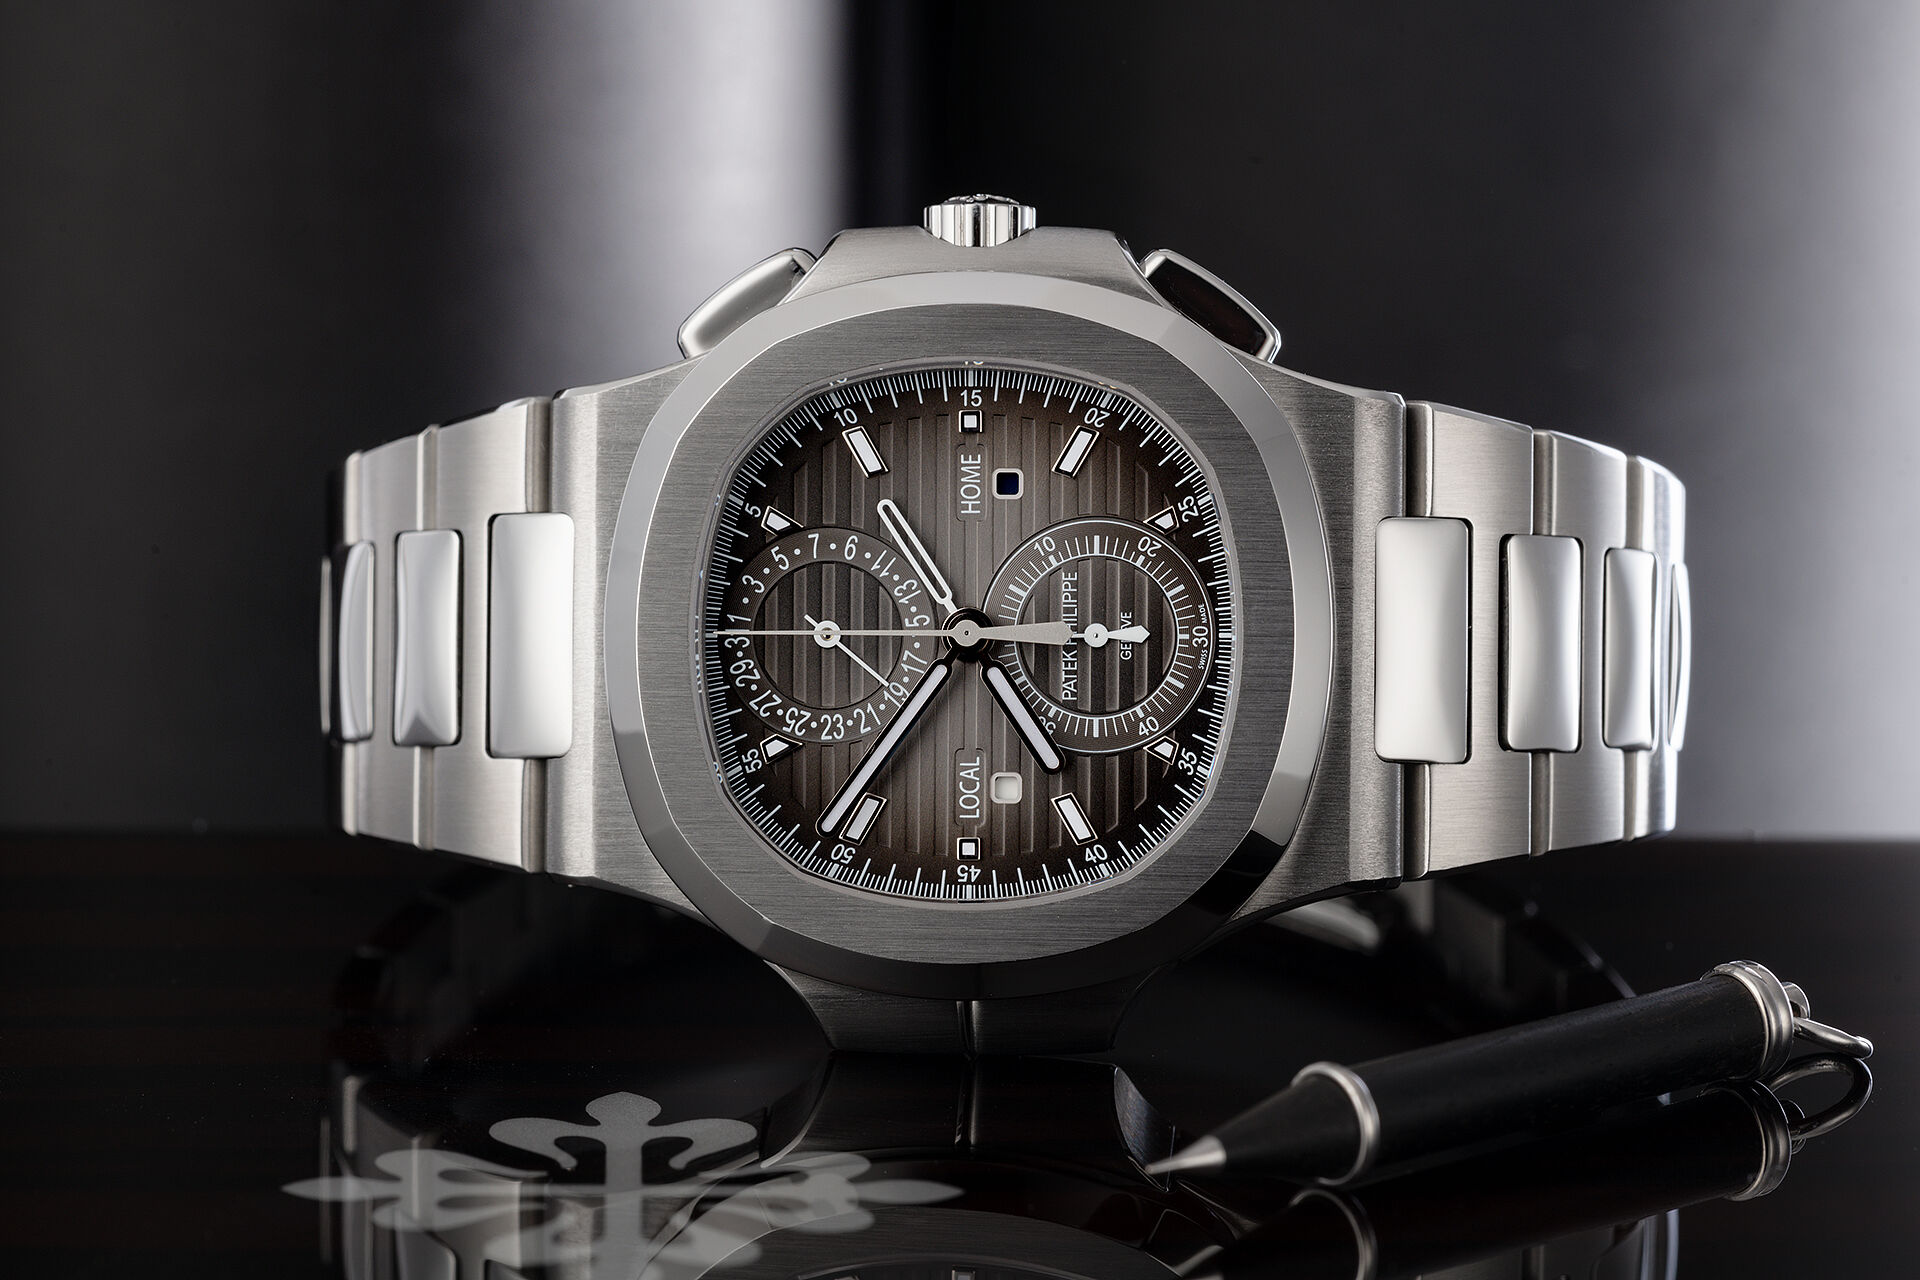 ref 5990/1A-001 | Box & Papers | Patek Philippe Nautilus Travel Time Chronograph